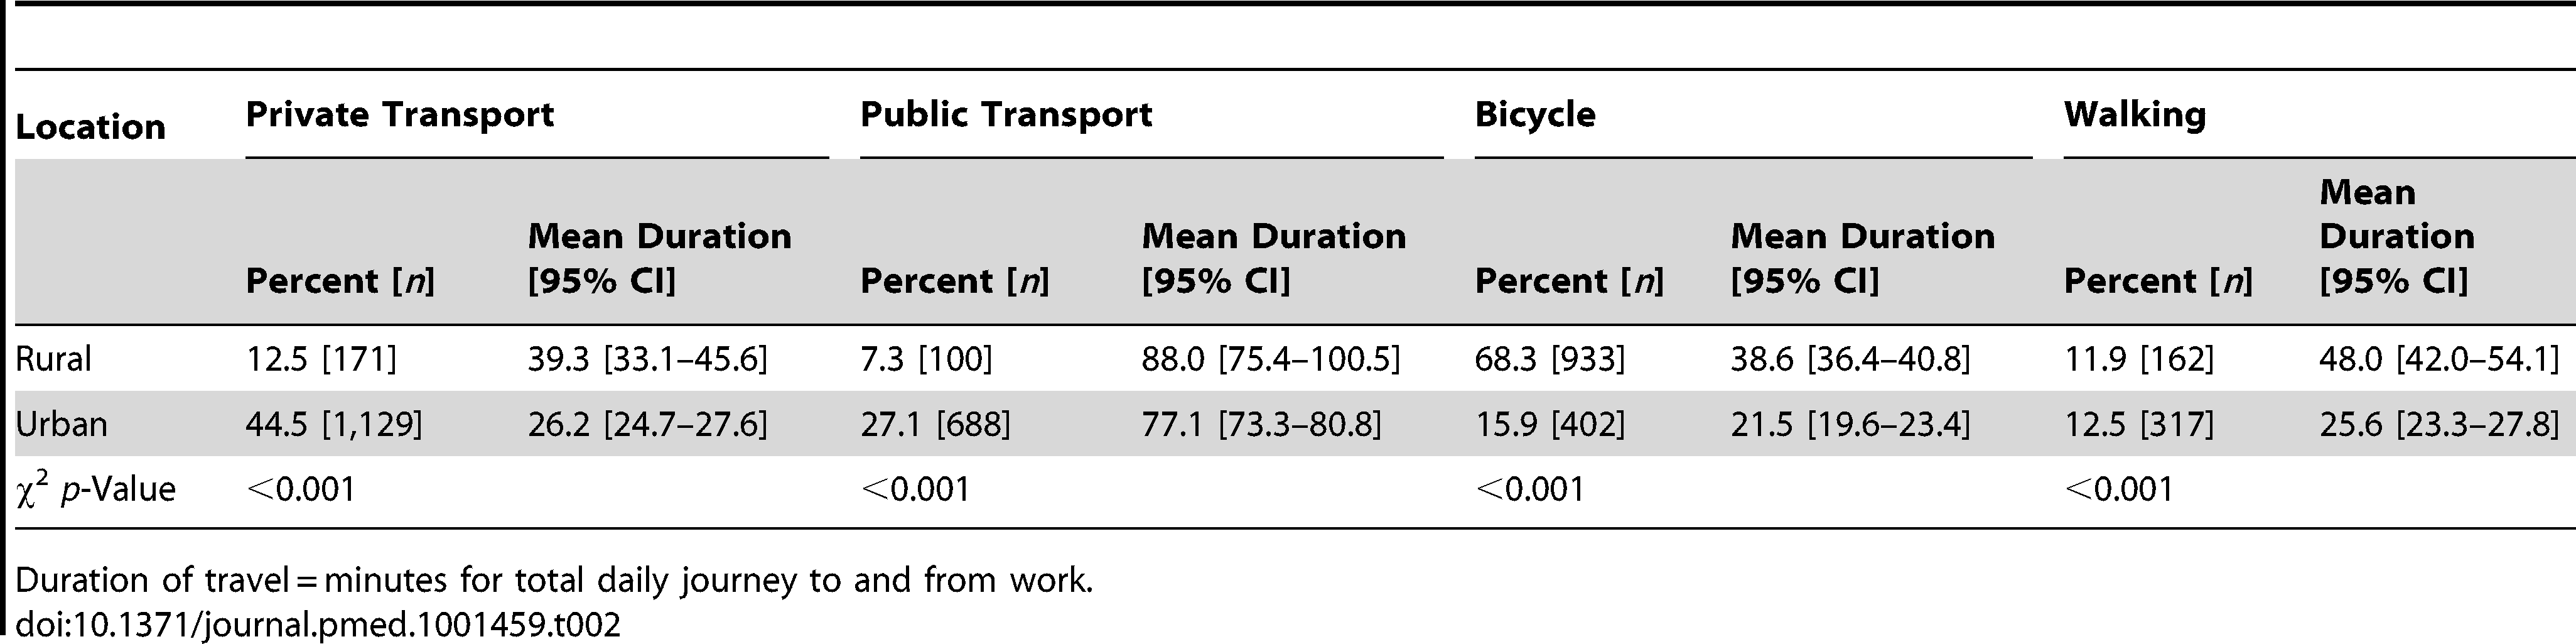 Percent using different travel modes to work and duration of travel in urban and rural dwellers.